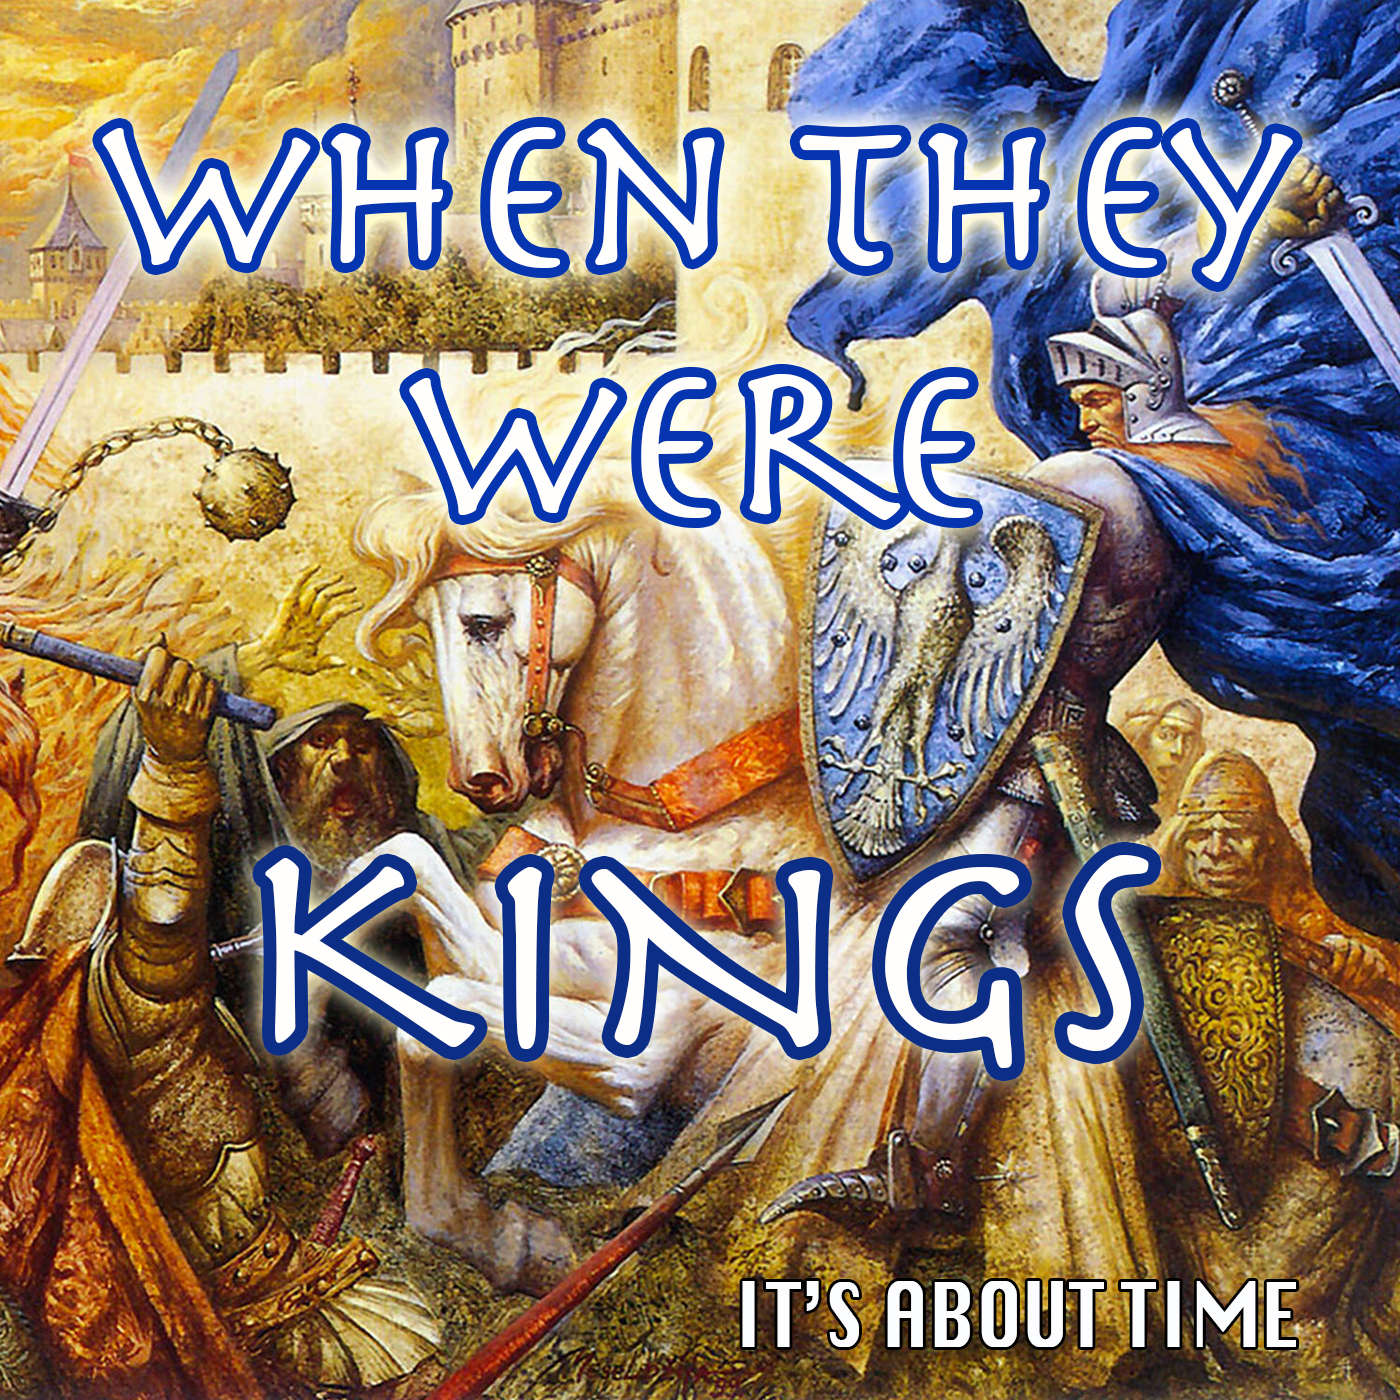 S02E10 - When They Were Kings - A trip through time to King Arthur's Court